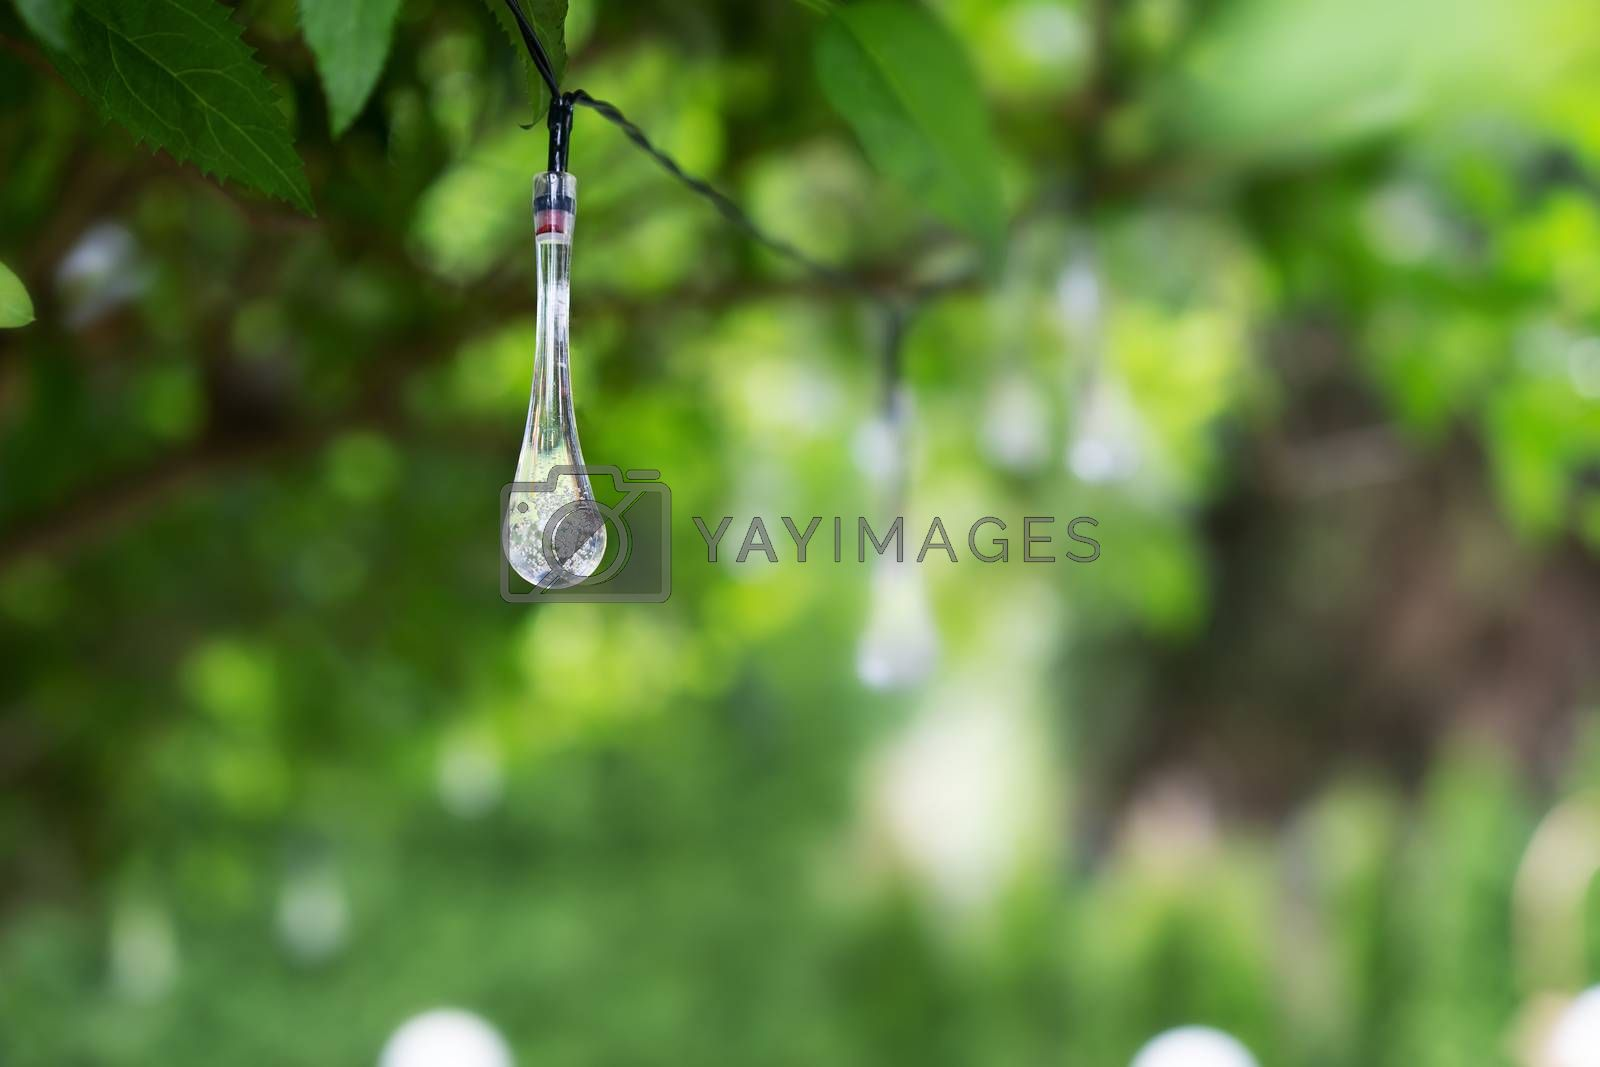 LED lighting in a droplet shape hanging in a green bush. by Daniel Albach